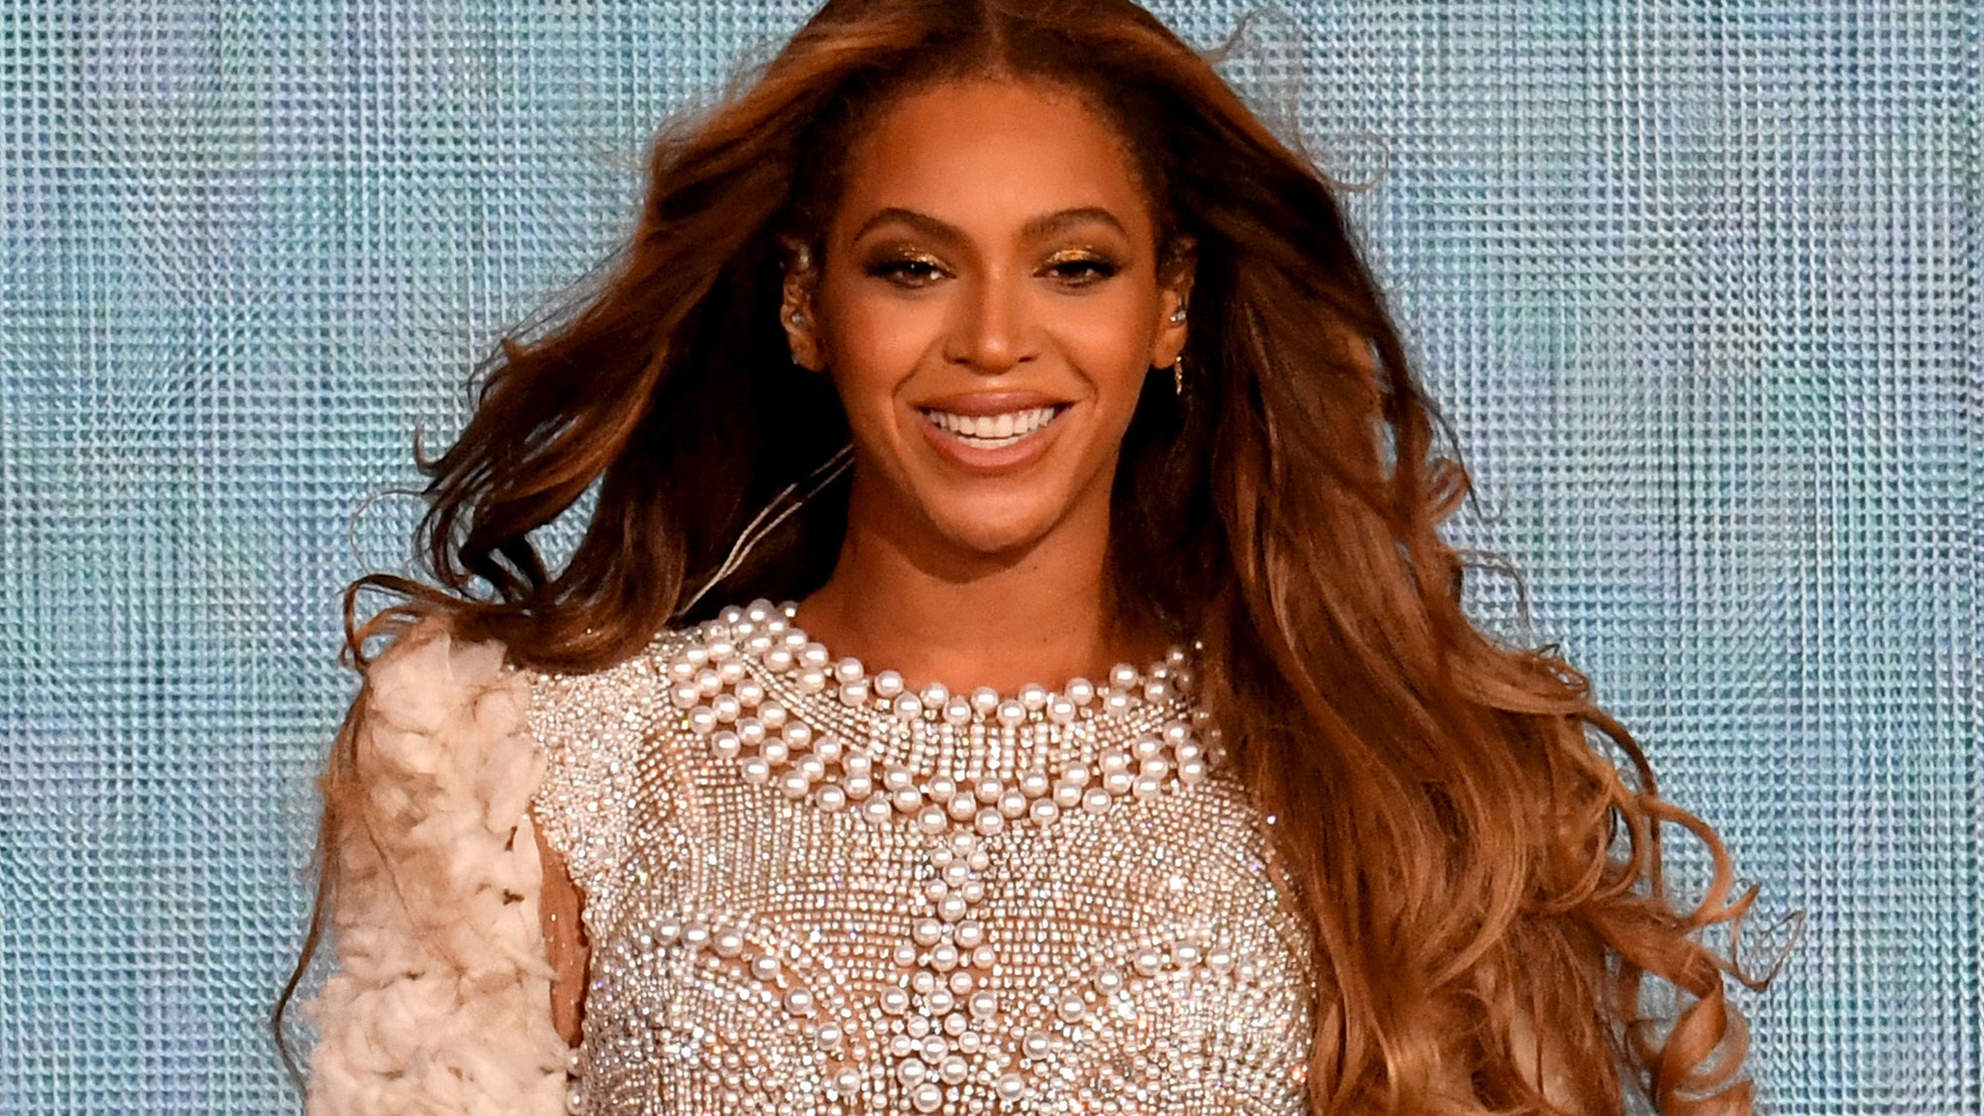 Beyoncé Shows Off Her Real Hair as Her Mother Tina Knowles Praises Her for Being 'Au Naturale'